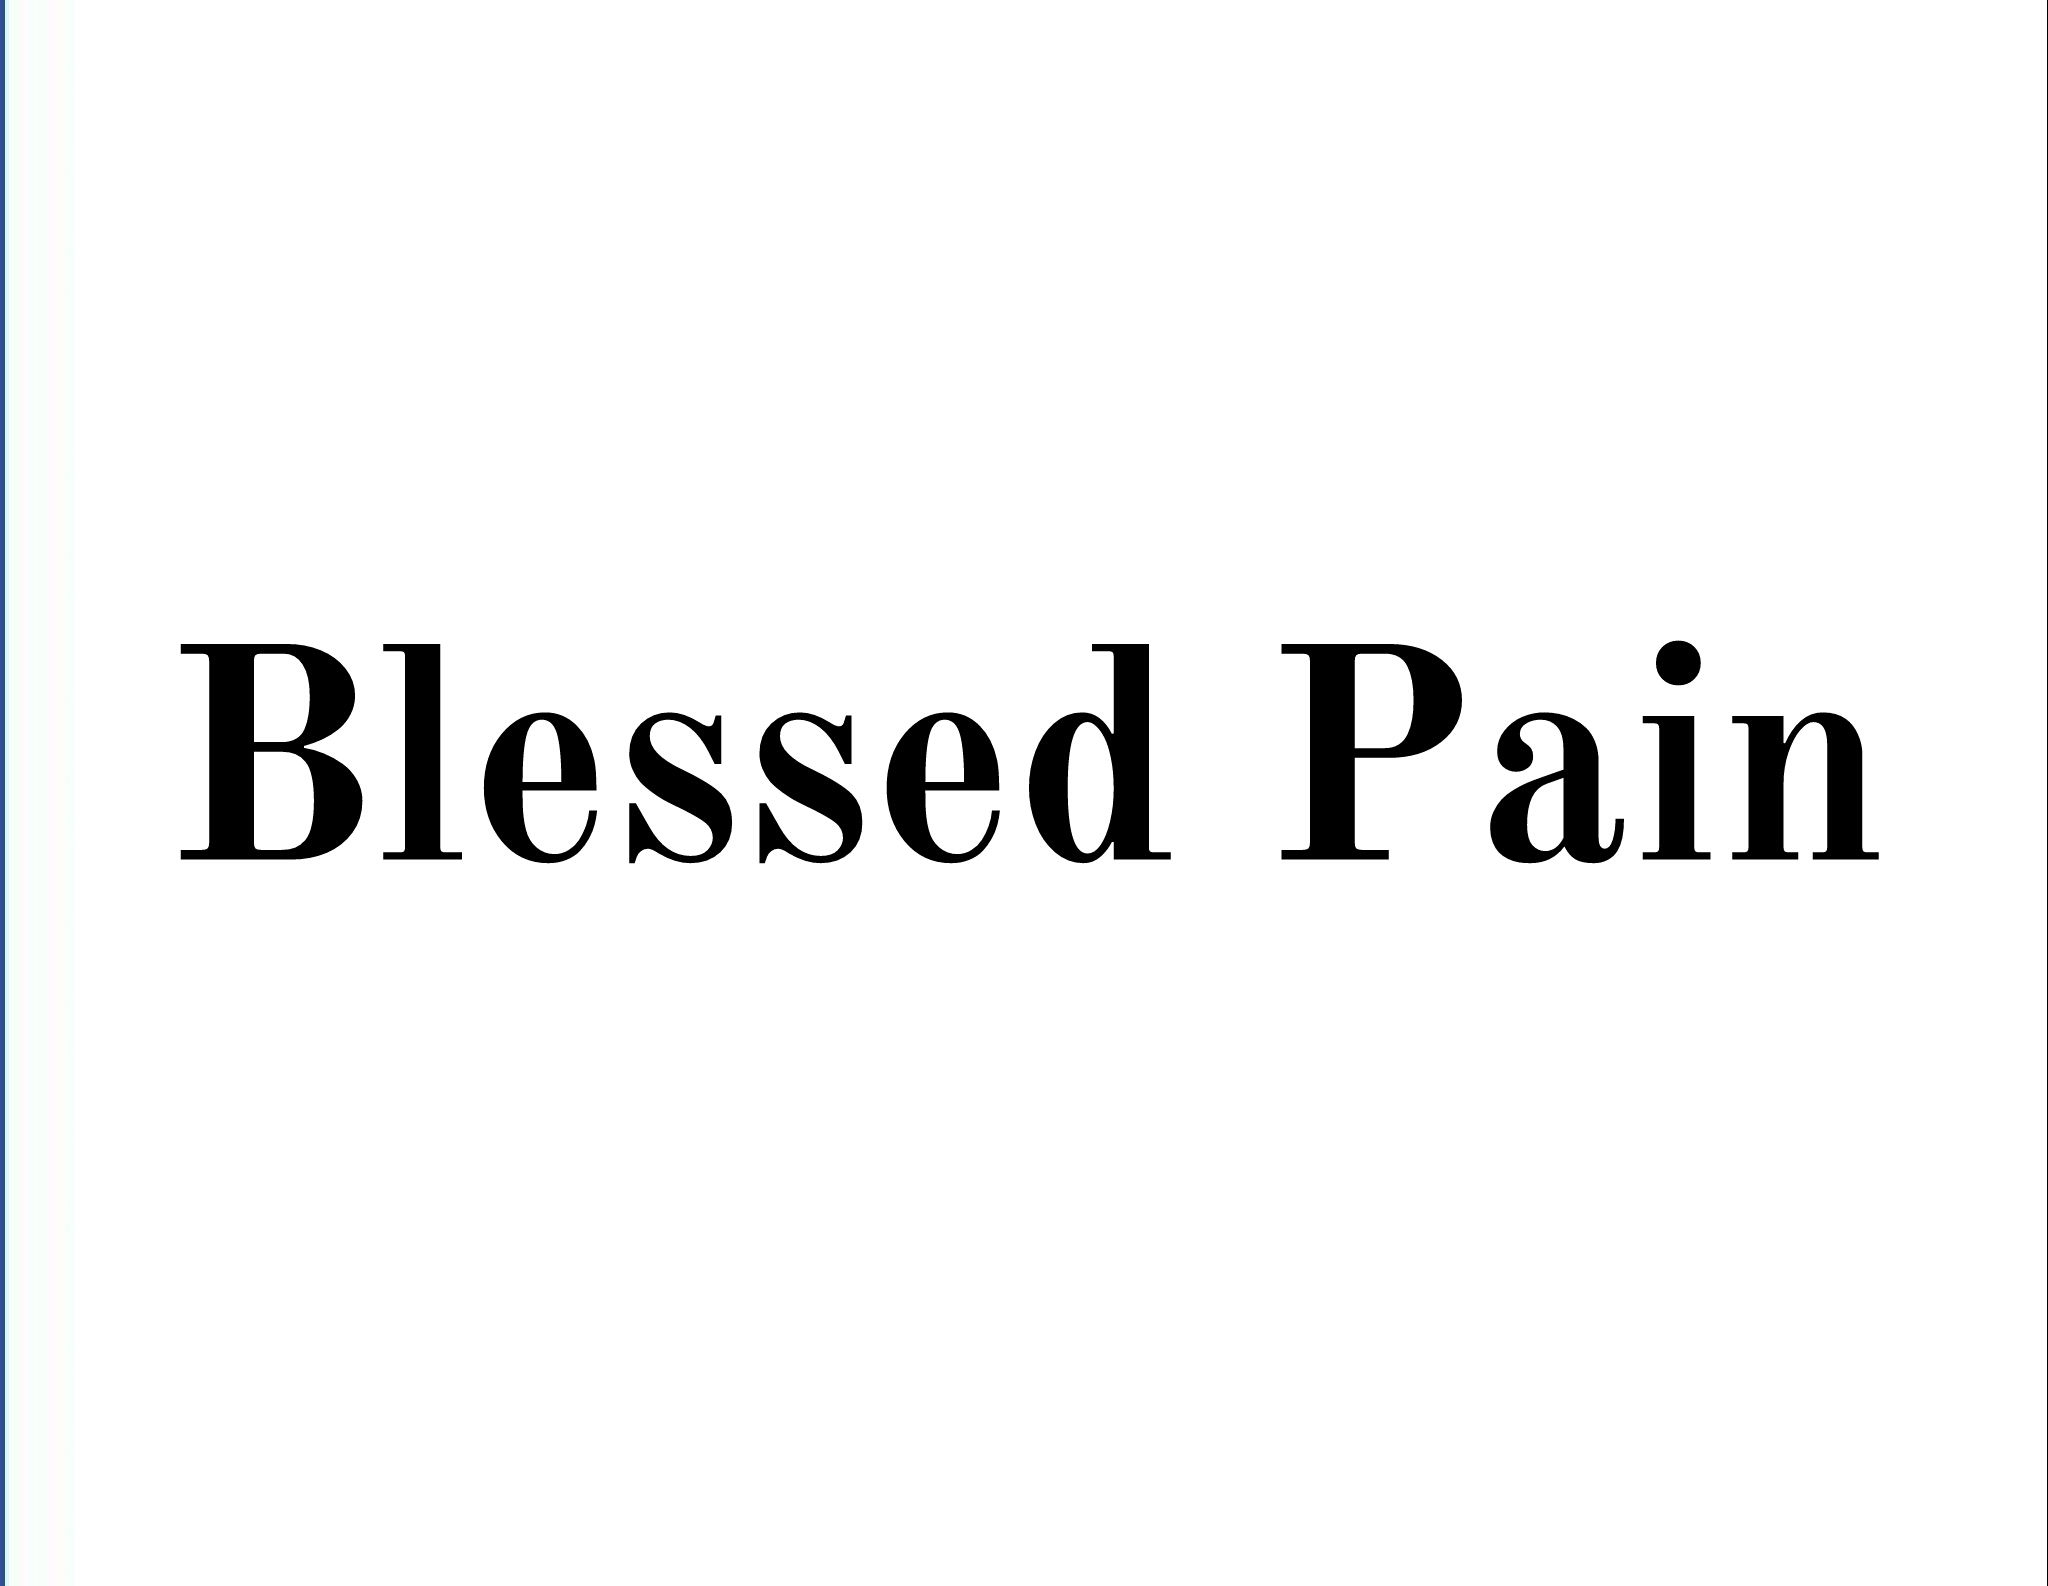 Blessed Pain